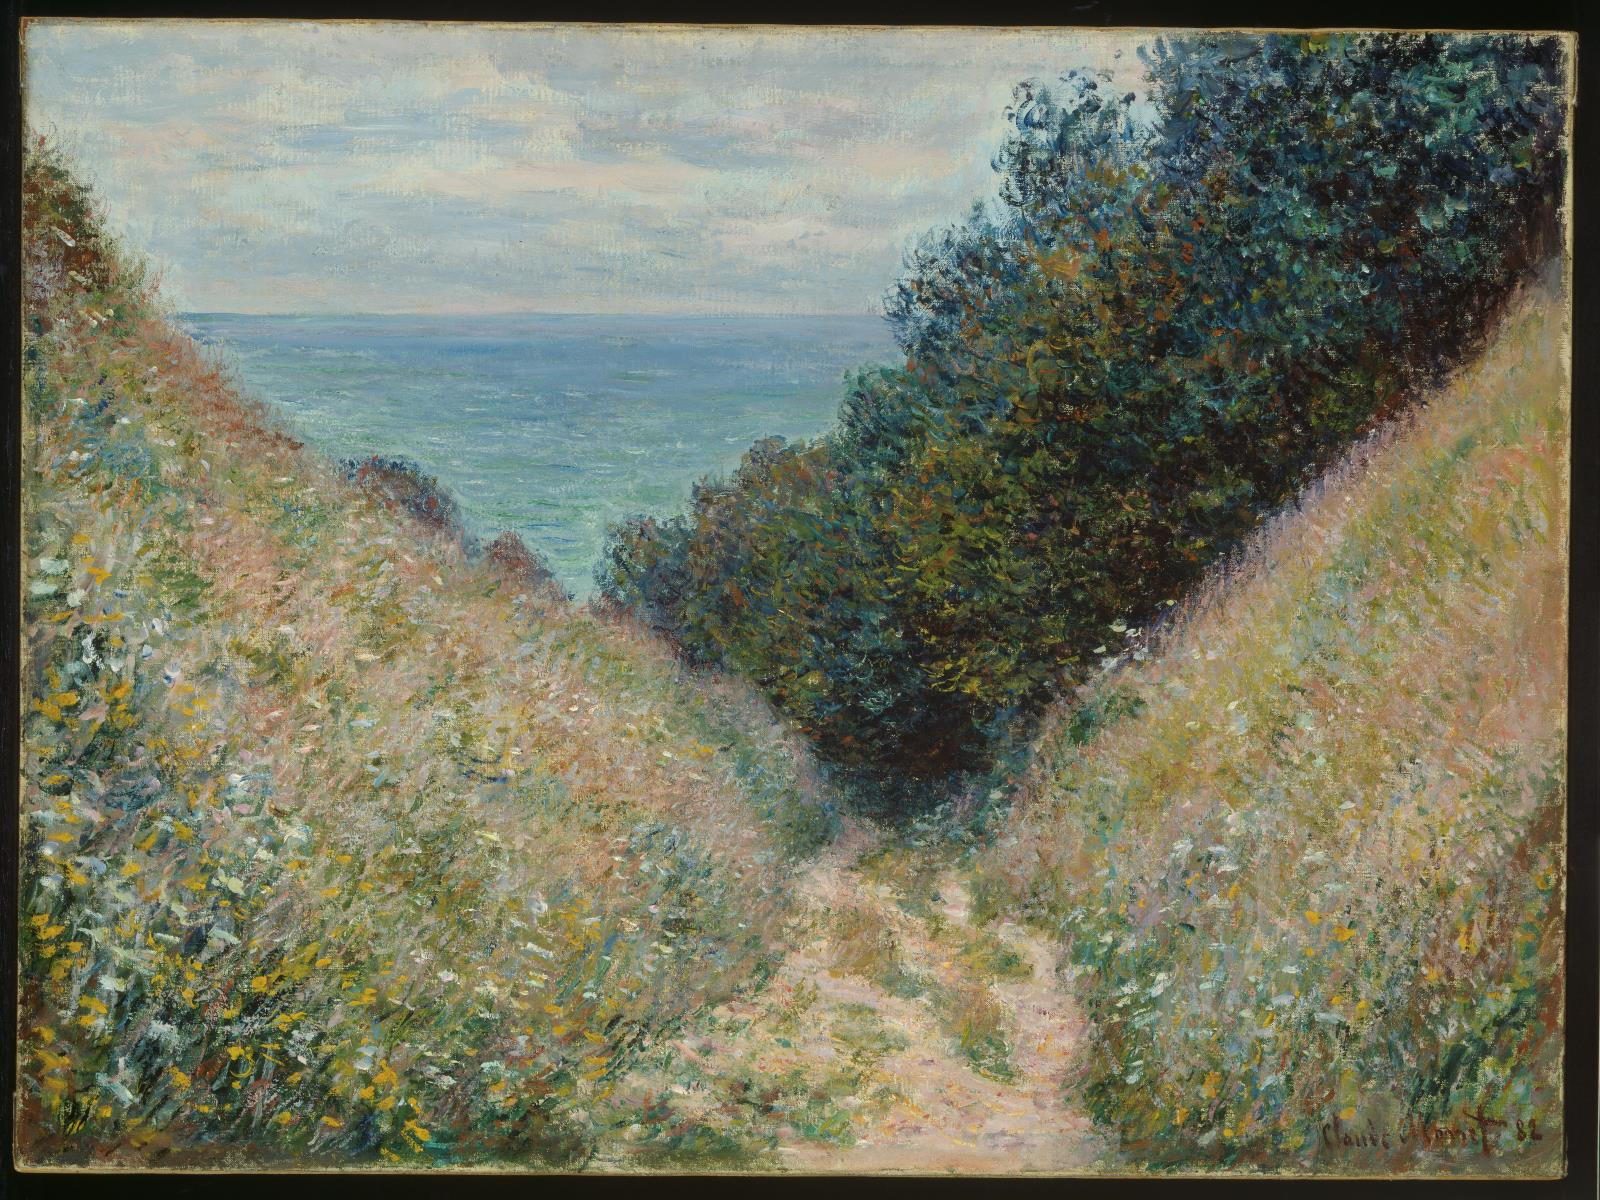 Claude Monet. Road at La Cavée, Pourville. 1882.